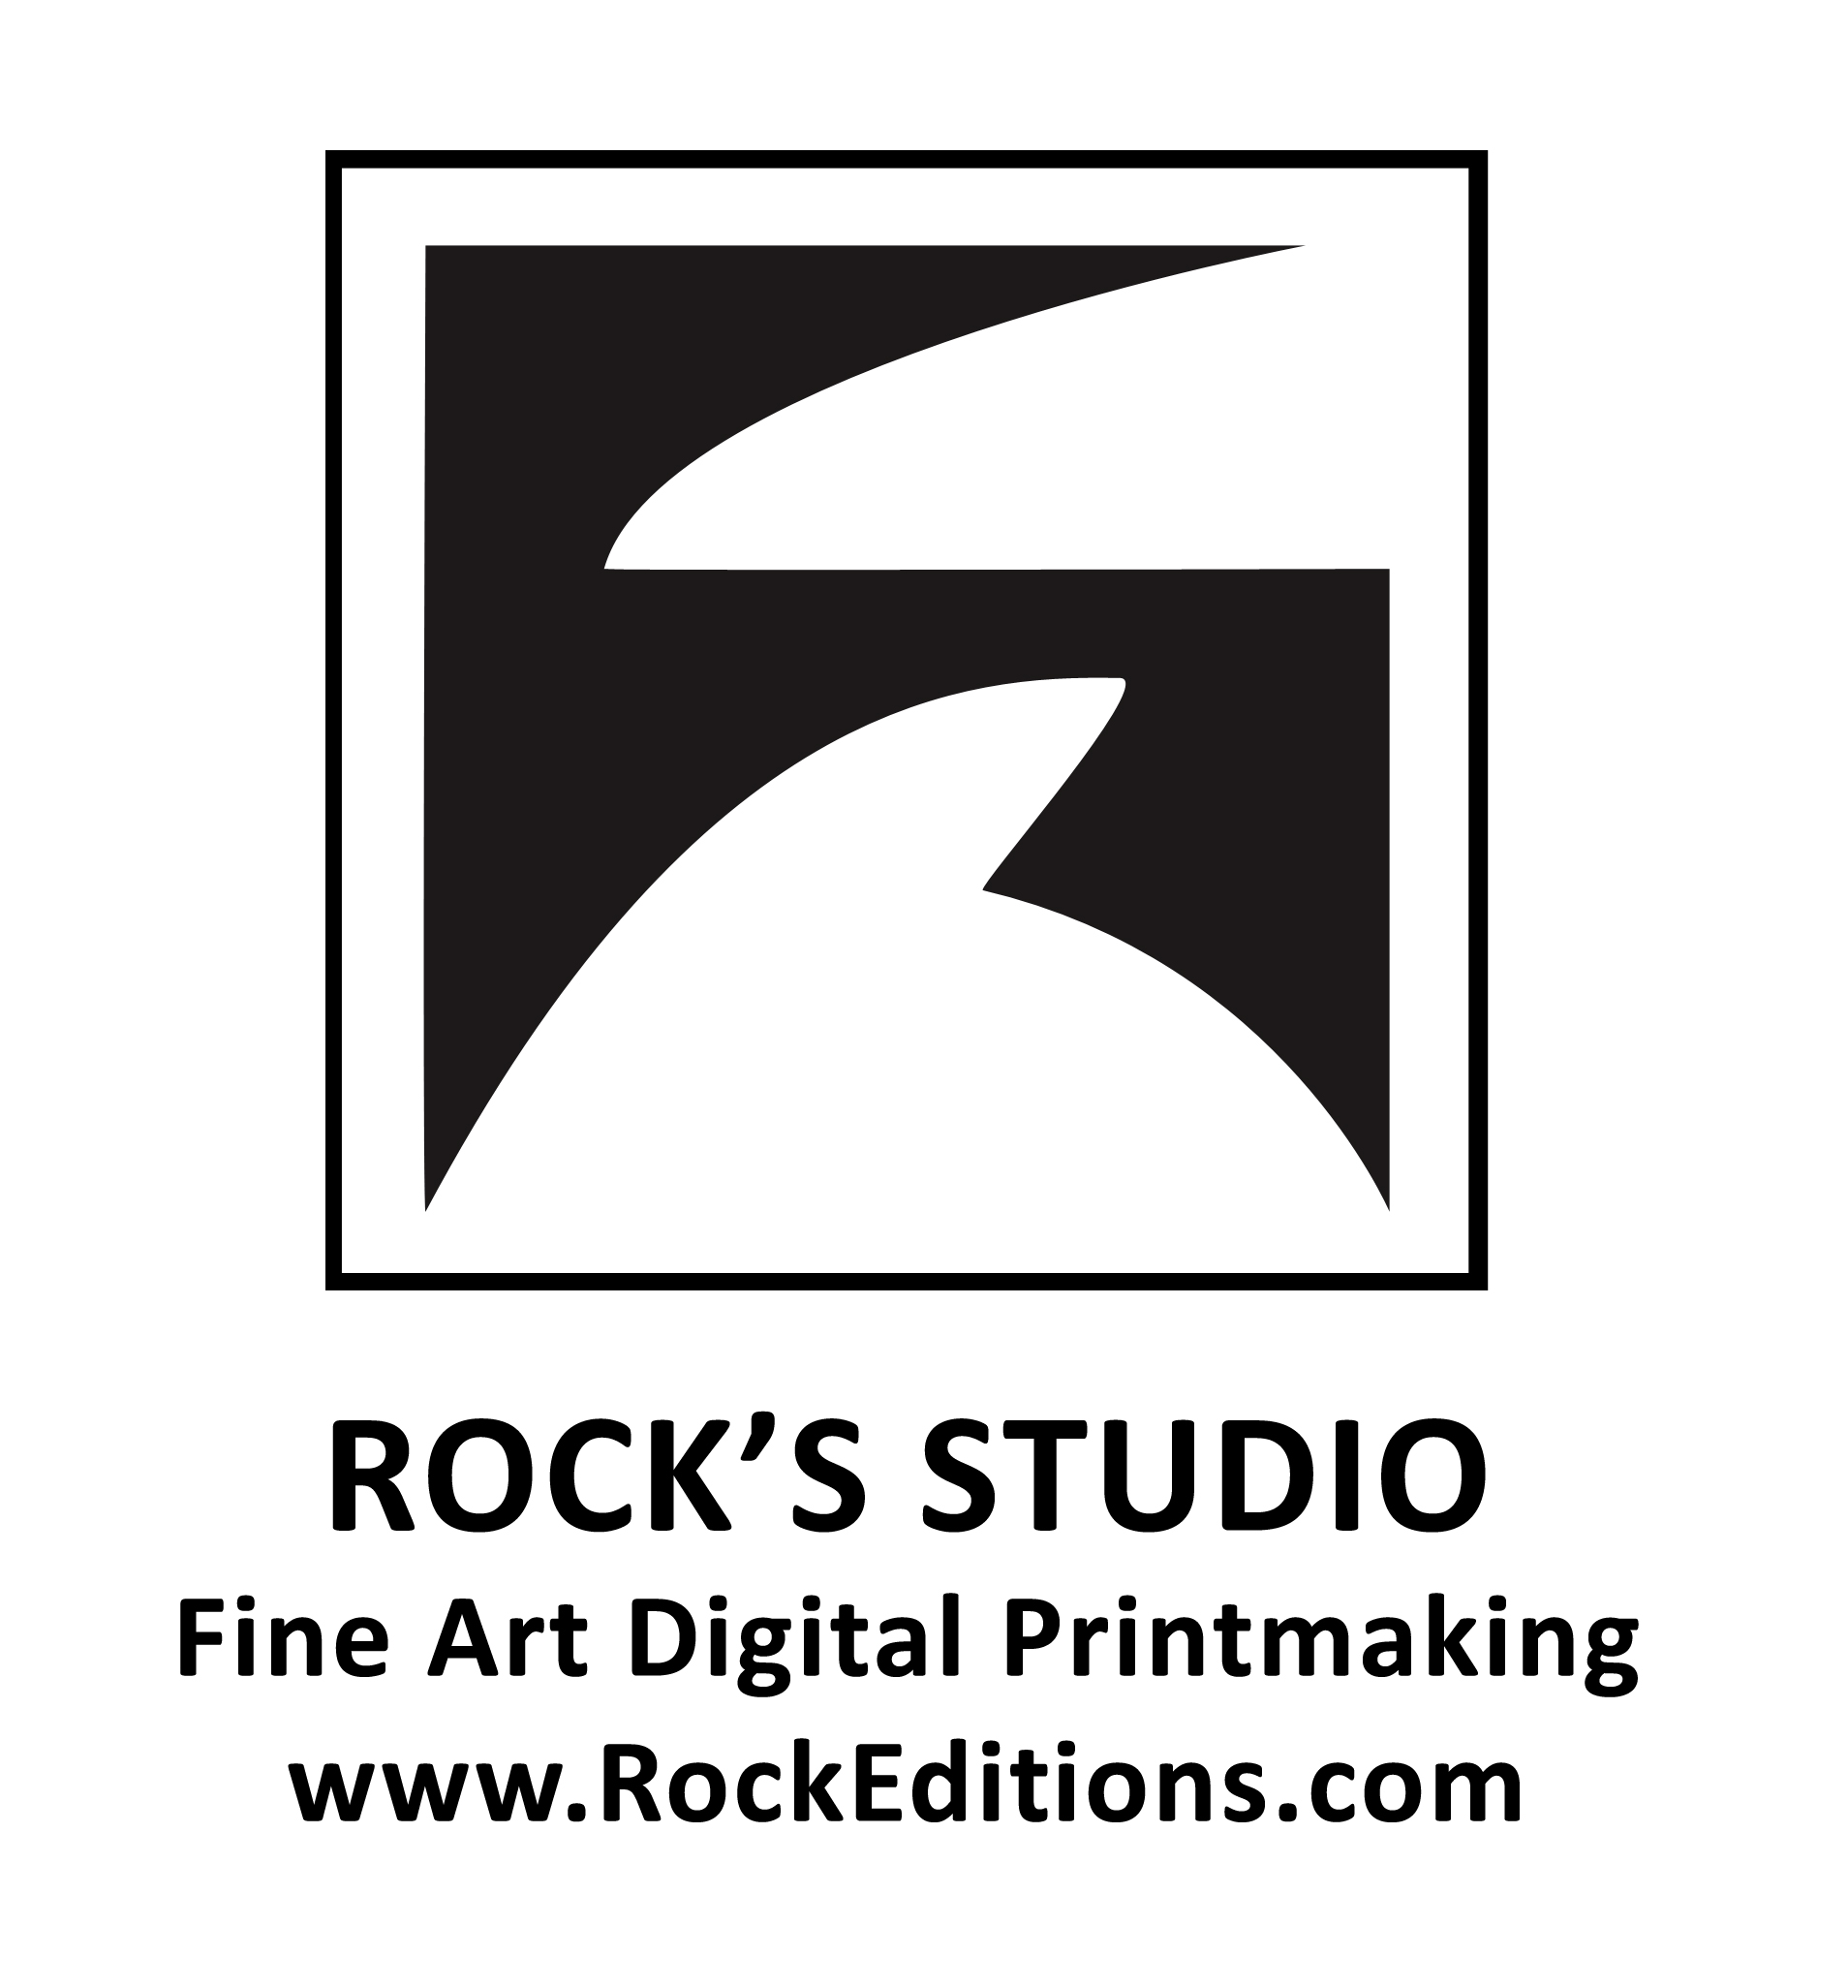 02.Rock Studio Logo.jpg